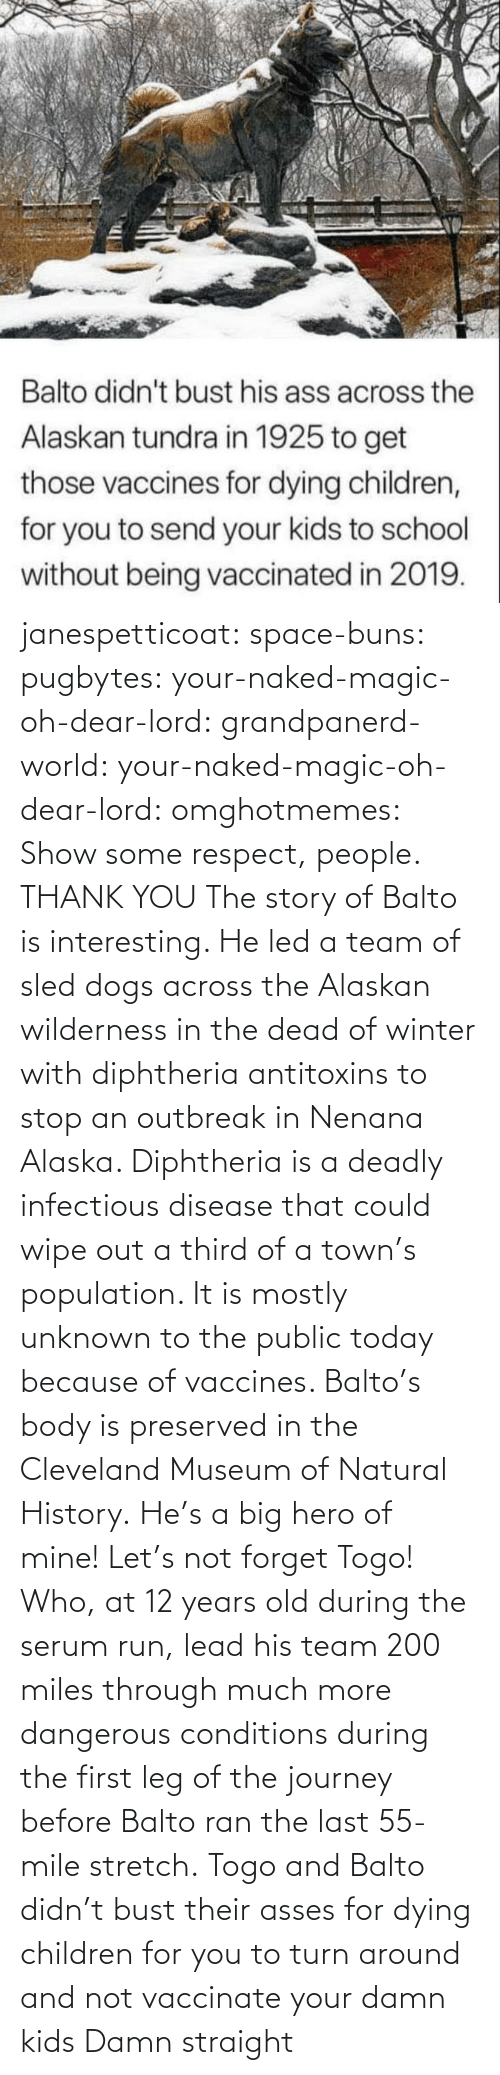 respect: janespetticoat: space-buns:  pugbytes:   your-naked-magic-oh-dear-lord:  grandpanerd-world:   your-naked-magic-oh-dear-lord:  omghotmemes: Show some respect, people.  THANK YOU   The story of Balto is interesting. He led a team of sled dogs across the Alaskan wilderness in the dead of winter with diphtheria antitoxins to stop an outbreak in Nenana Alaska. Diphtheria is a deadly infectious disease that could wipe out a third of a town's population. It is mostly unknown to the public today because of vaccines. Balto's body is preserved in the Cleveland Museum of Natural History.   He's a big hero of mine!   Let's not forget Togo! Who, at 12 years old during the serum run, lead his team 200 miles through much more dangerous conditions during the first leg of the journey before Balto ran the last 55-mile stretch.   Togo and Balto didn't bust their asses for dying children for you to turn around and not vaccinate your damn kids    Damn straight